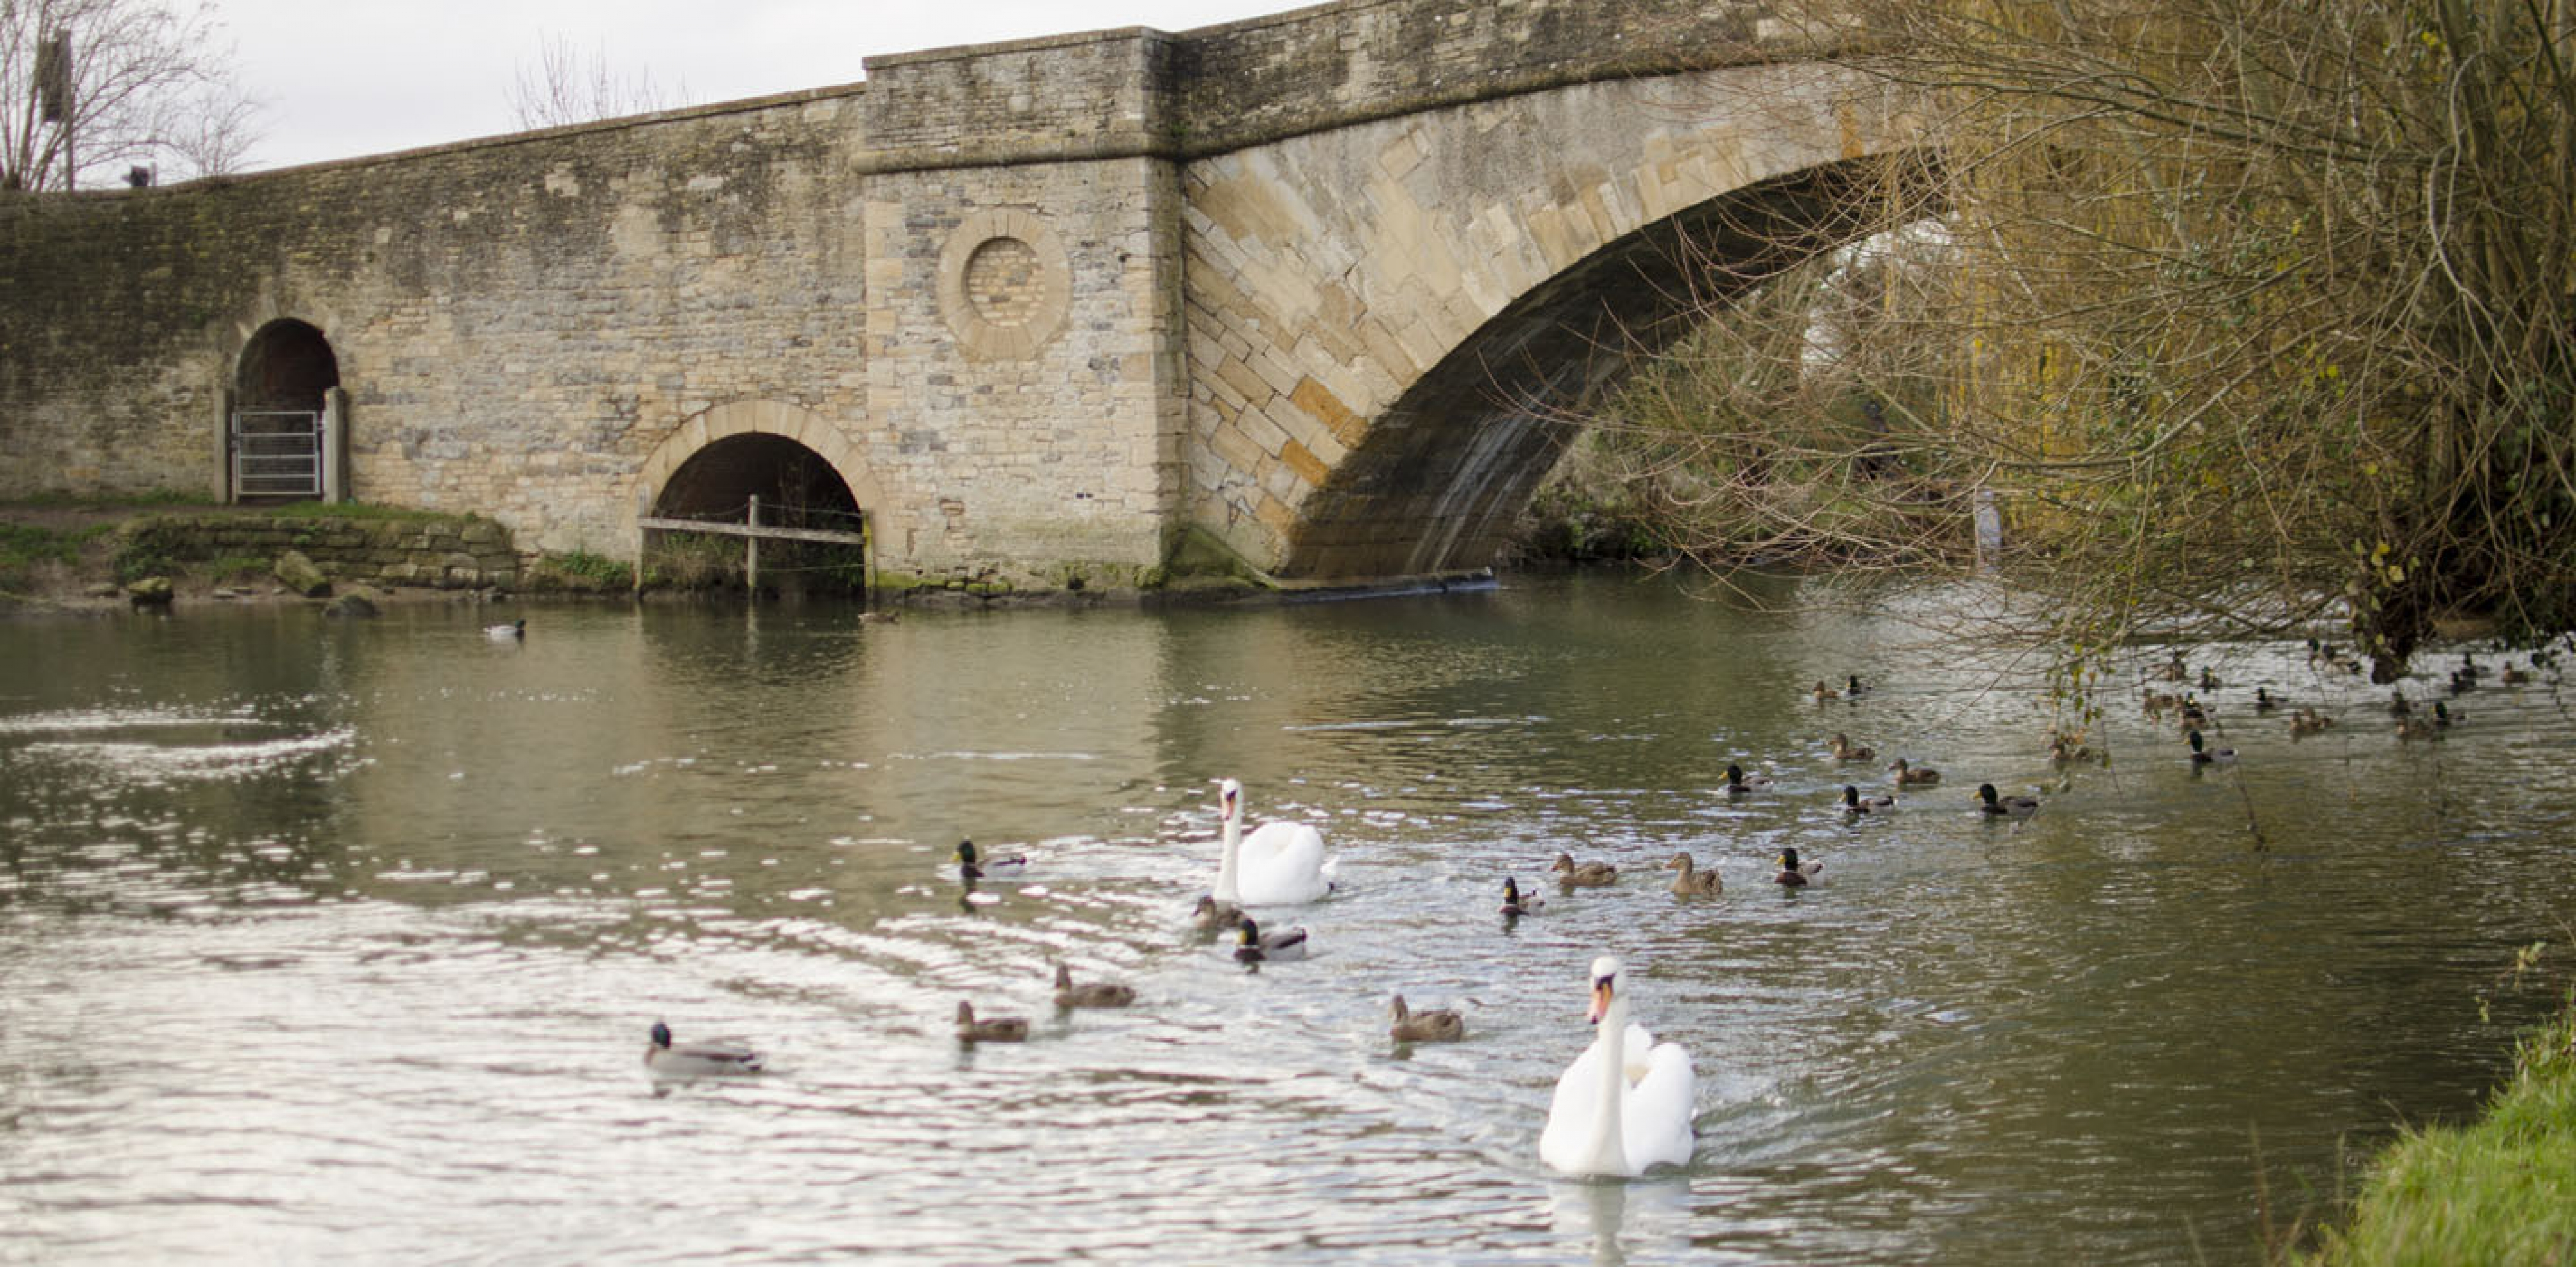 In the beautiful Cotswold town of Lechlade on Thames